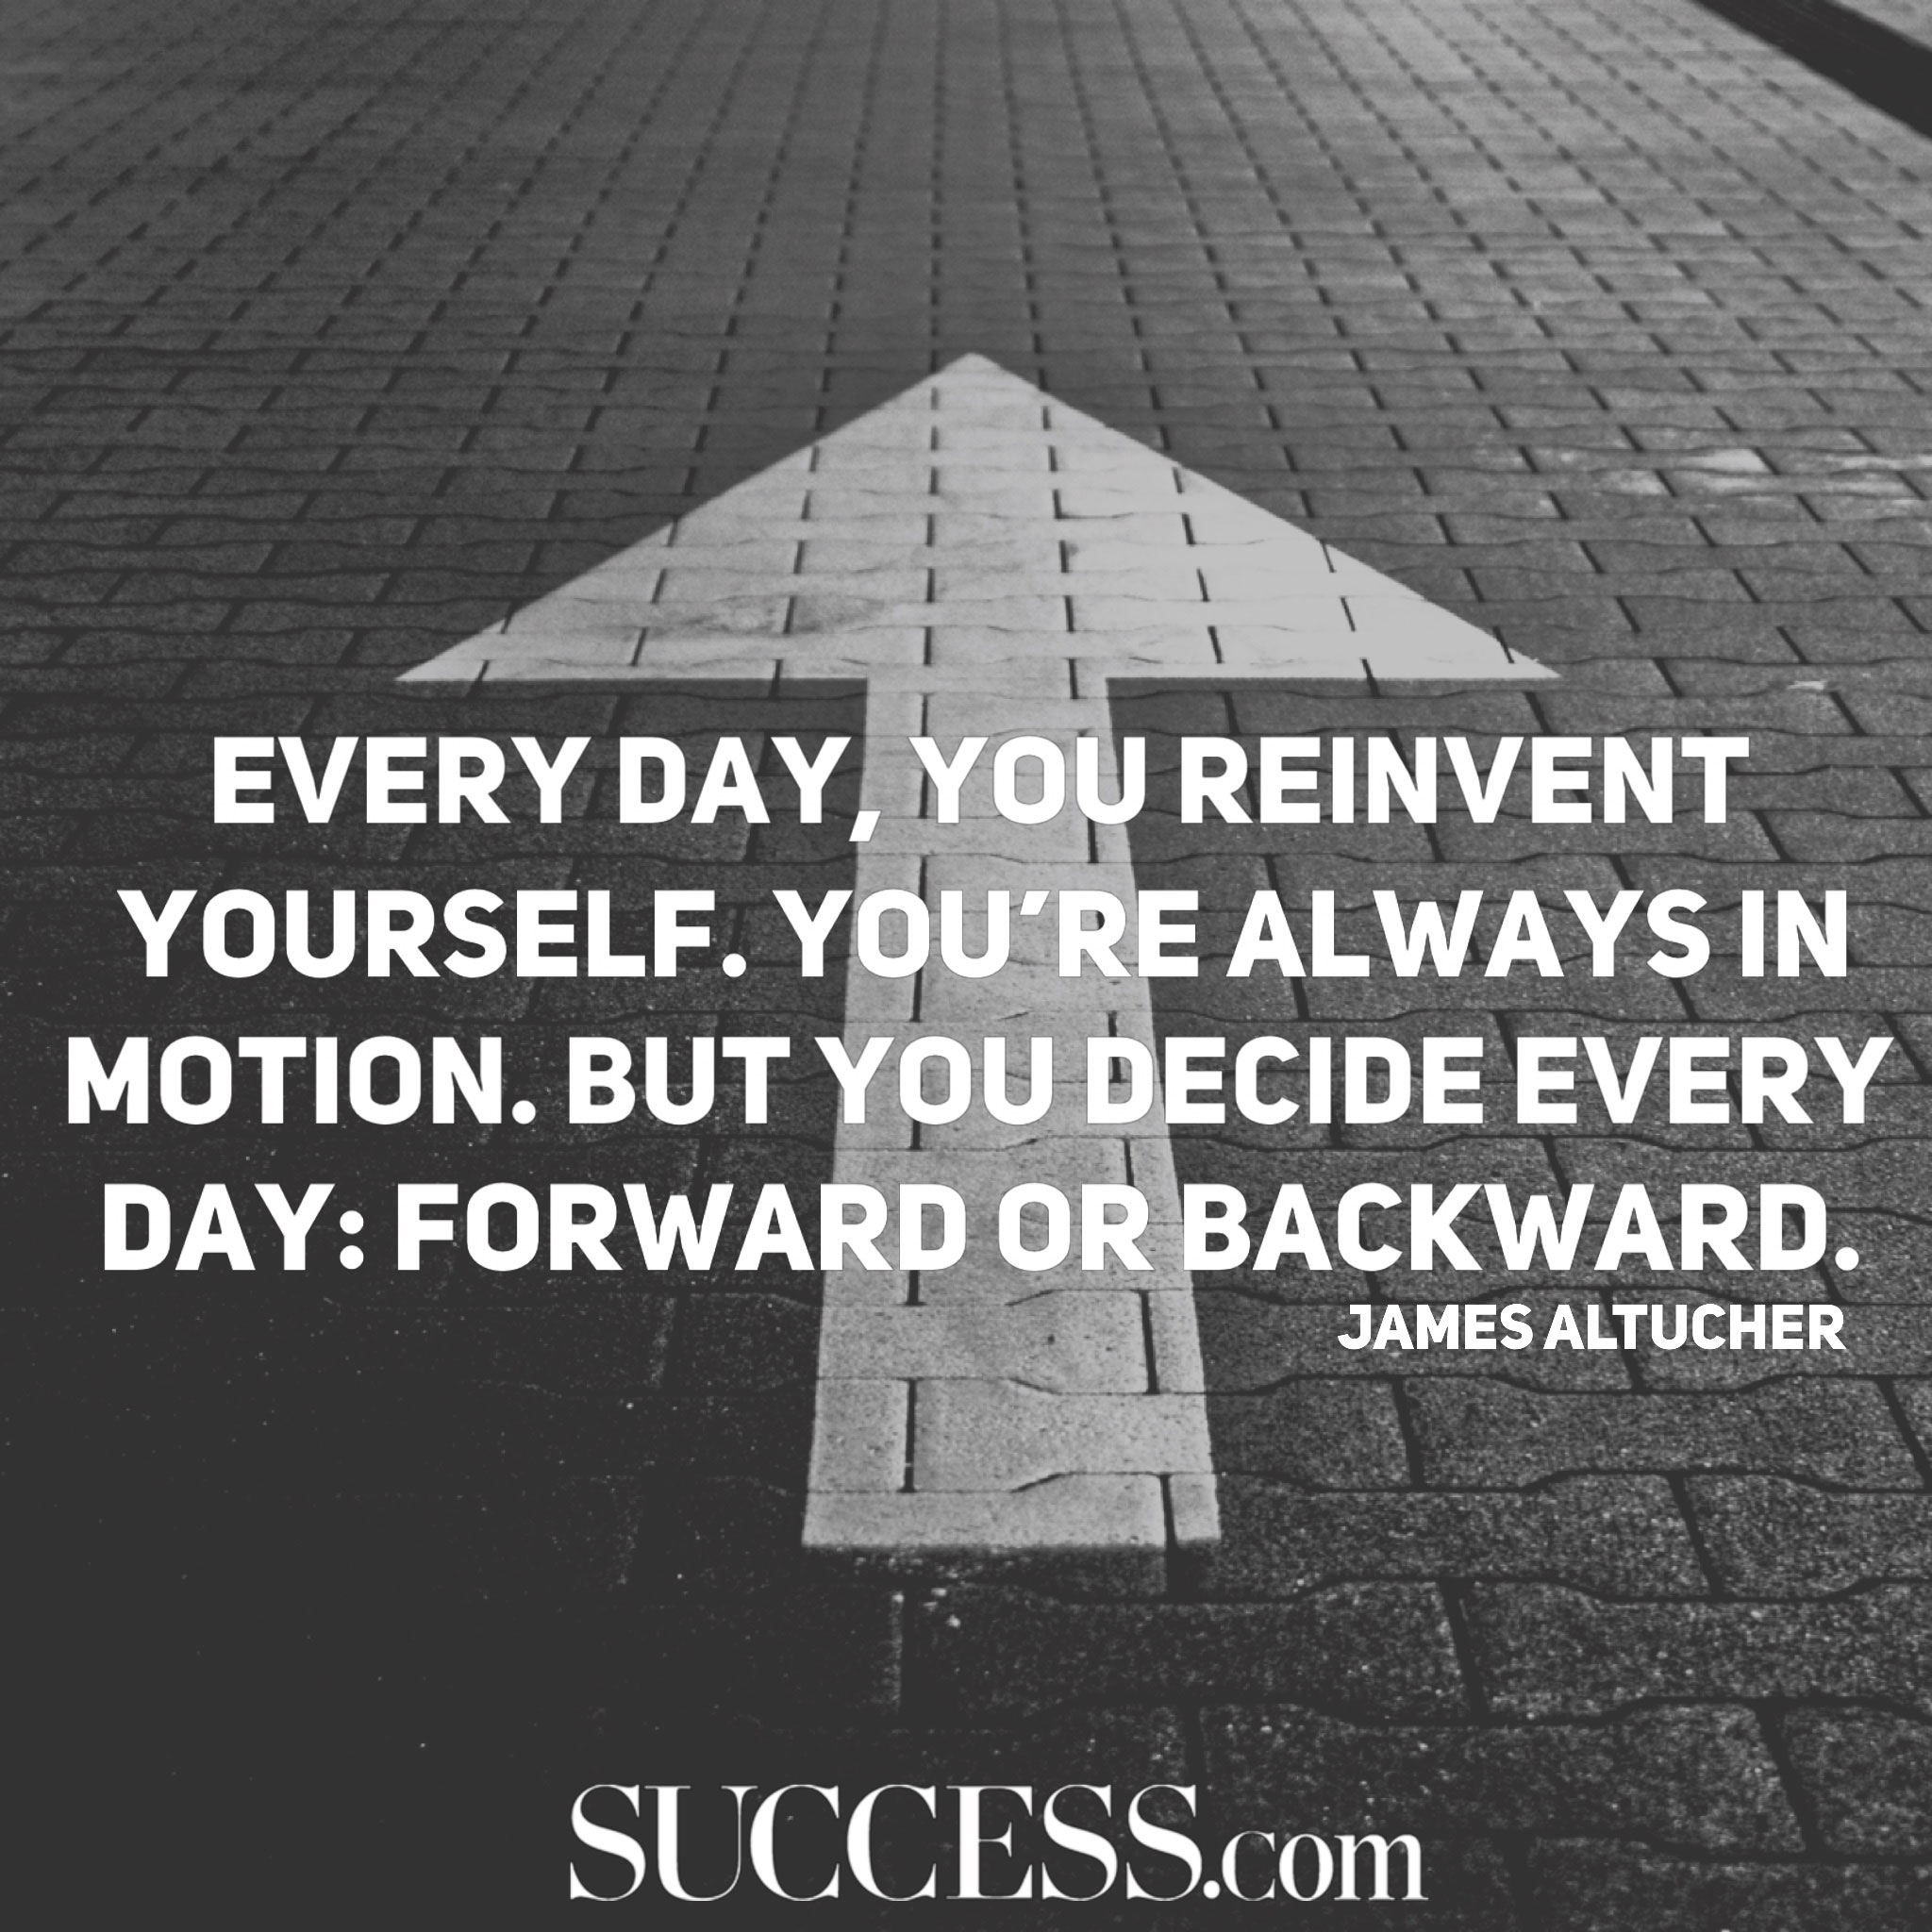 9e2dd8fbee 17 Inspiring Quotes About Reinventing Yourself